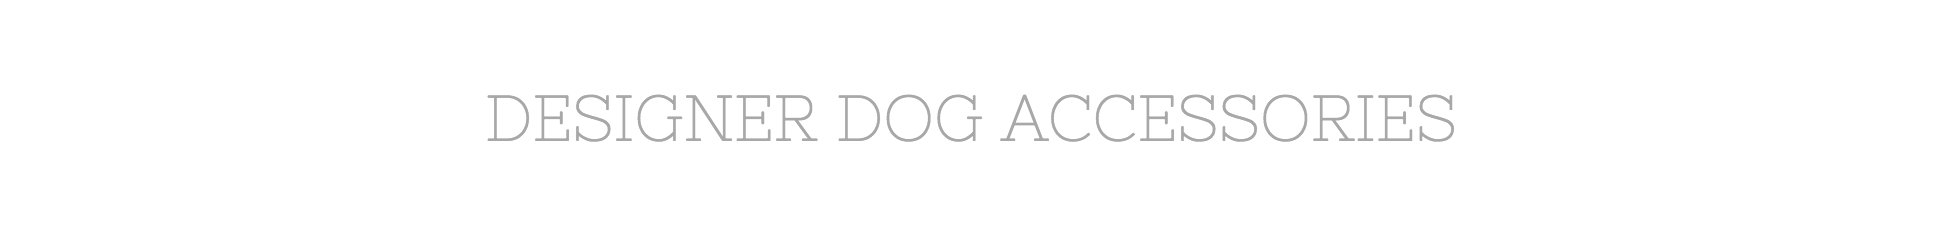 designer-dog-accessories.png